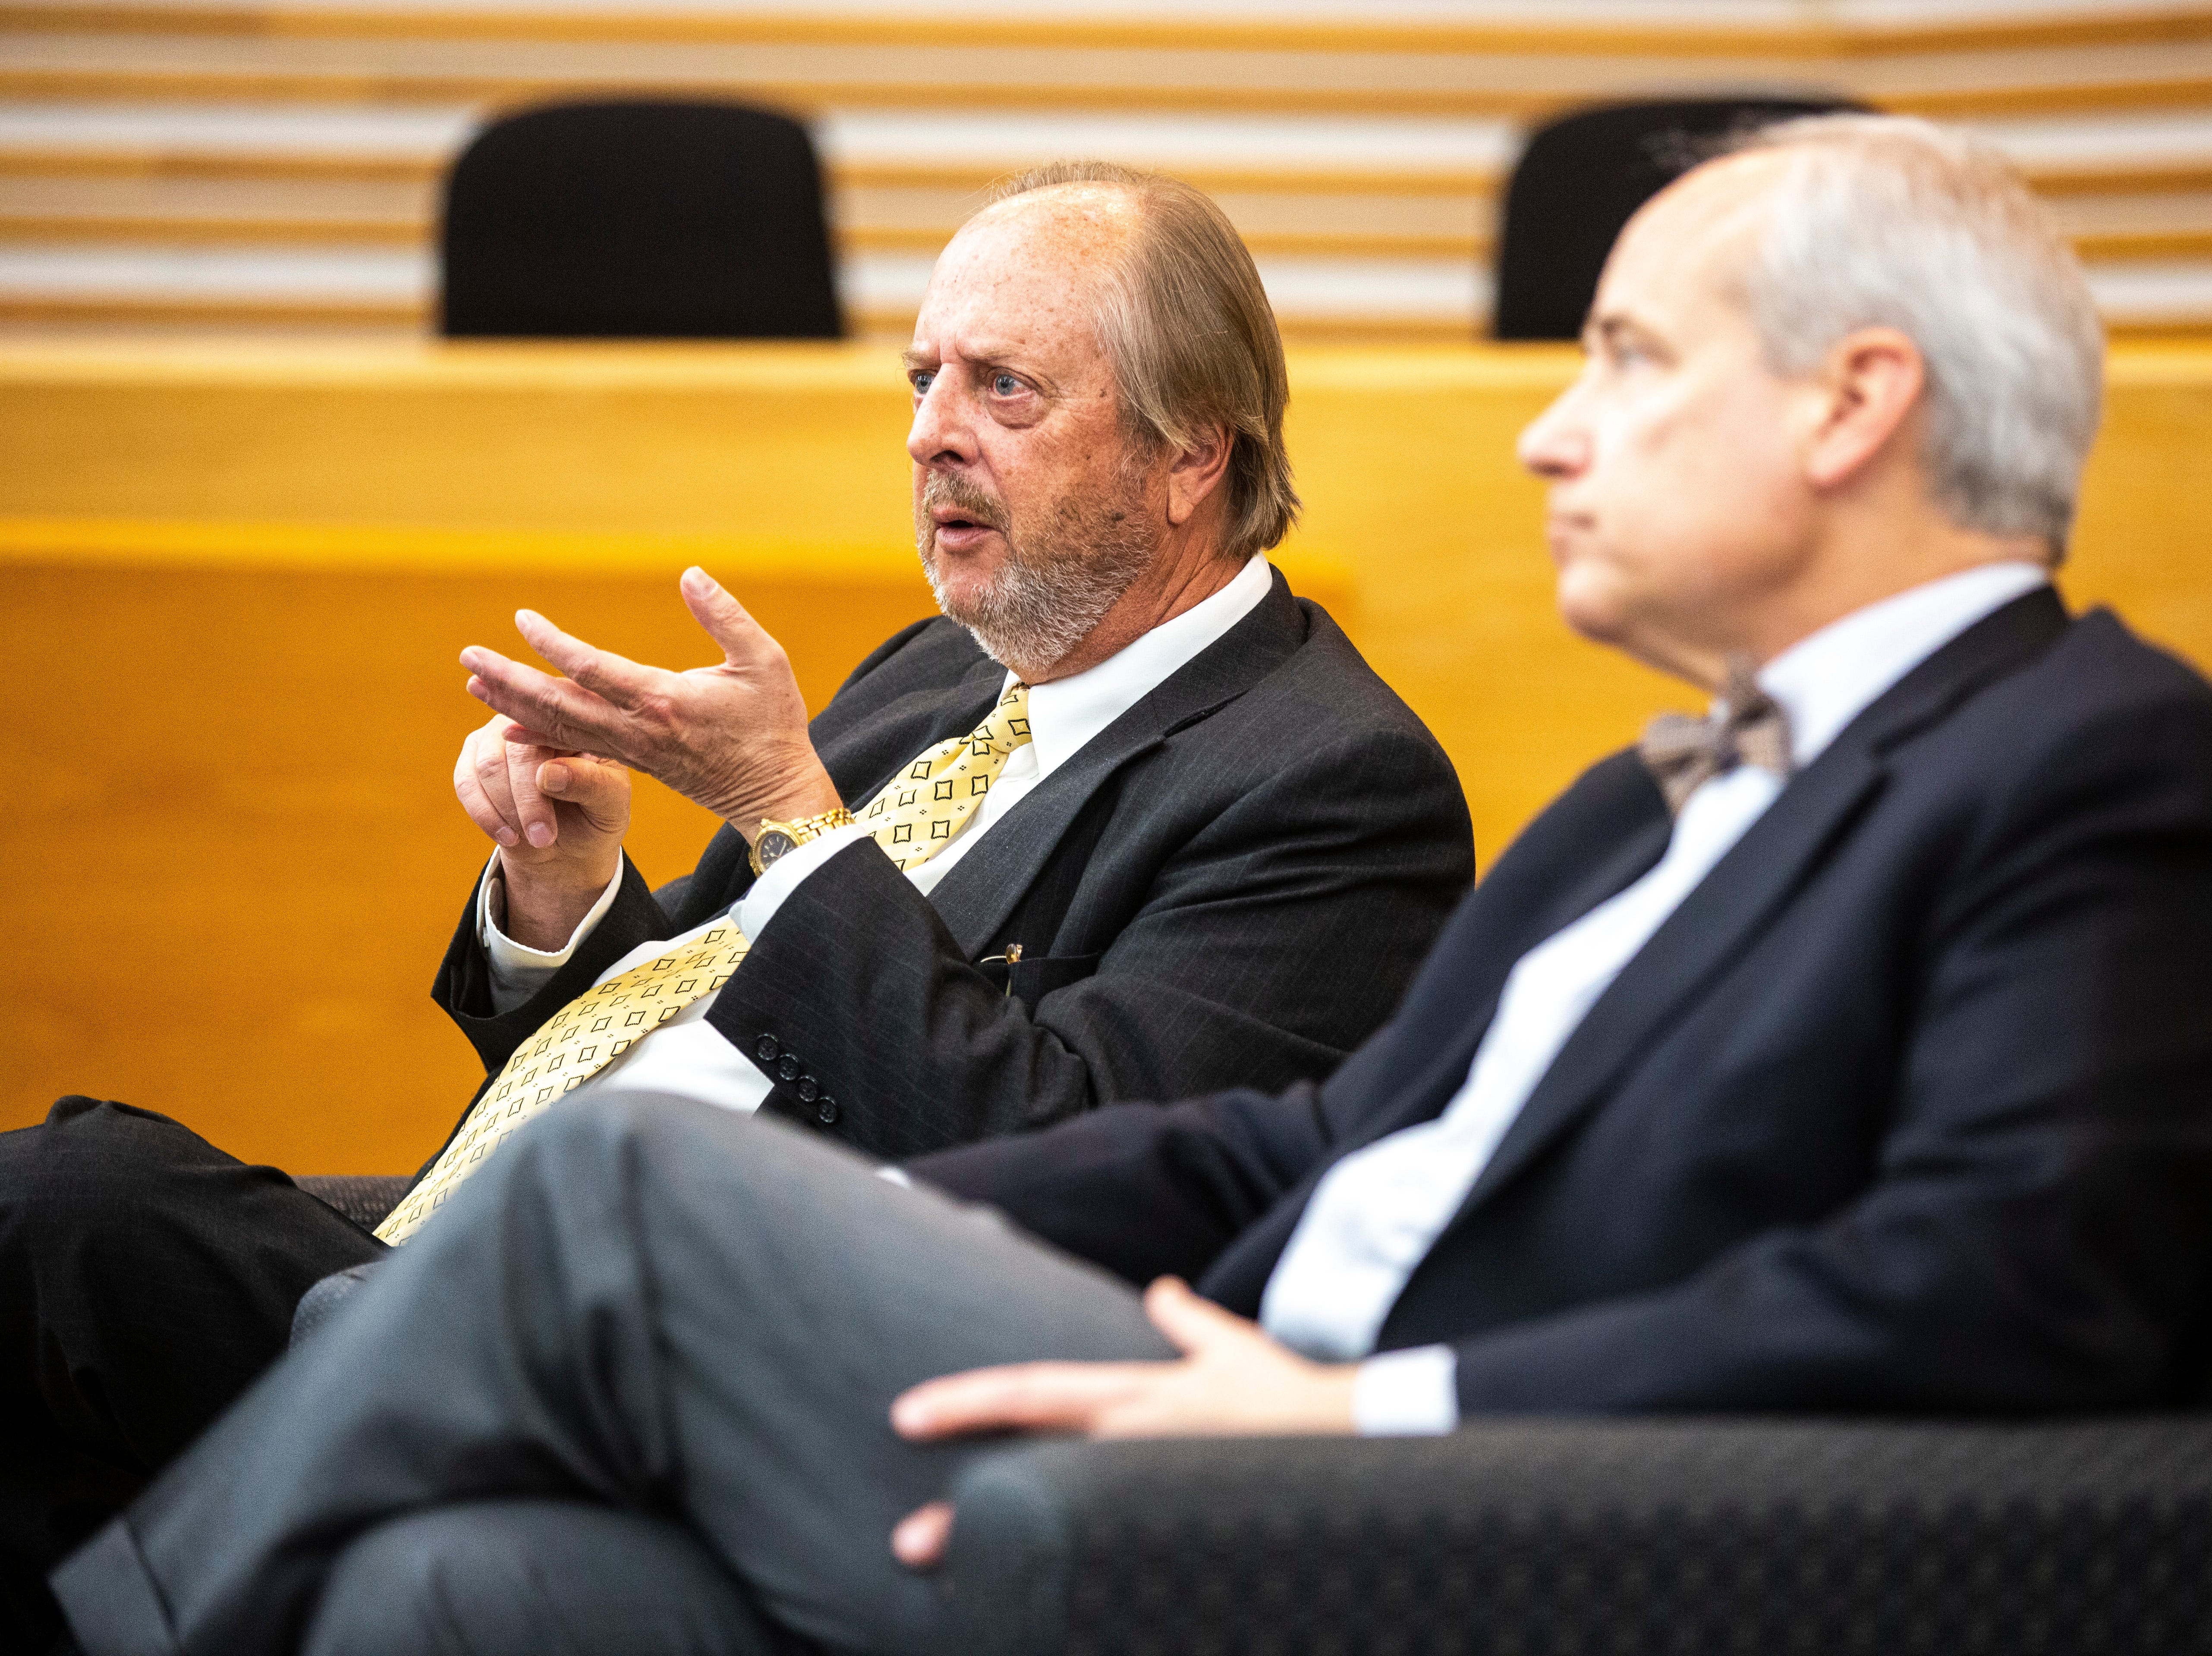 Former Iowa Supreme Court Justice David L. Baker, left, speaks during a panel regarding the Varnum v. Brien Iowa Supreme Court decision with District 5 Judge Robert B. Hanson, Thursday, April 18, 2019, in the Boyd Law Building on the University of Iowa campus in Iowa City, Iowa.